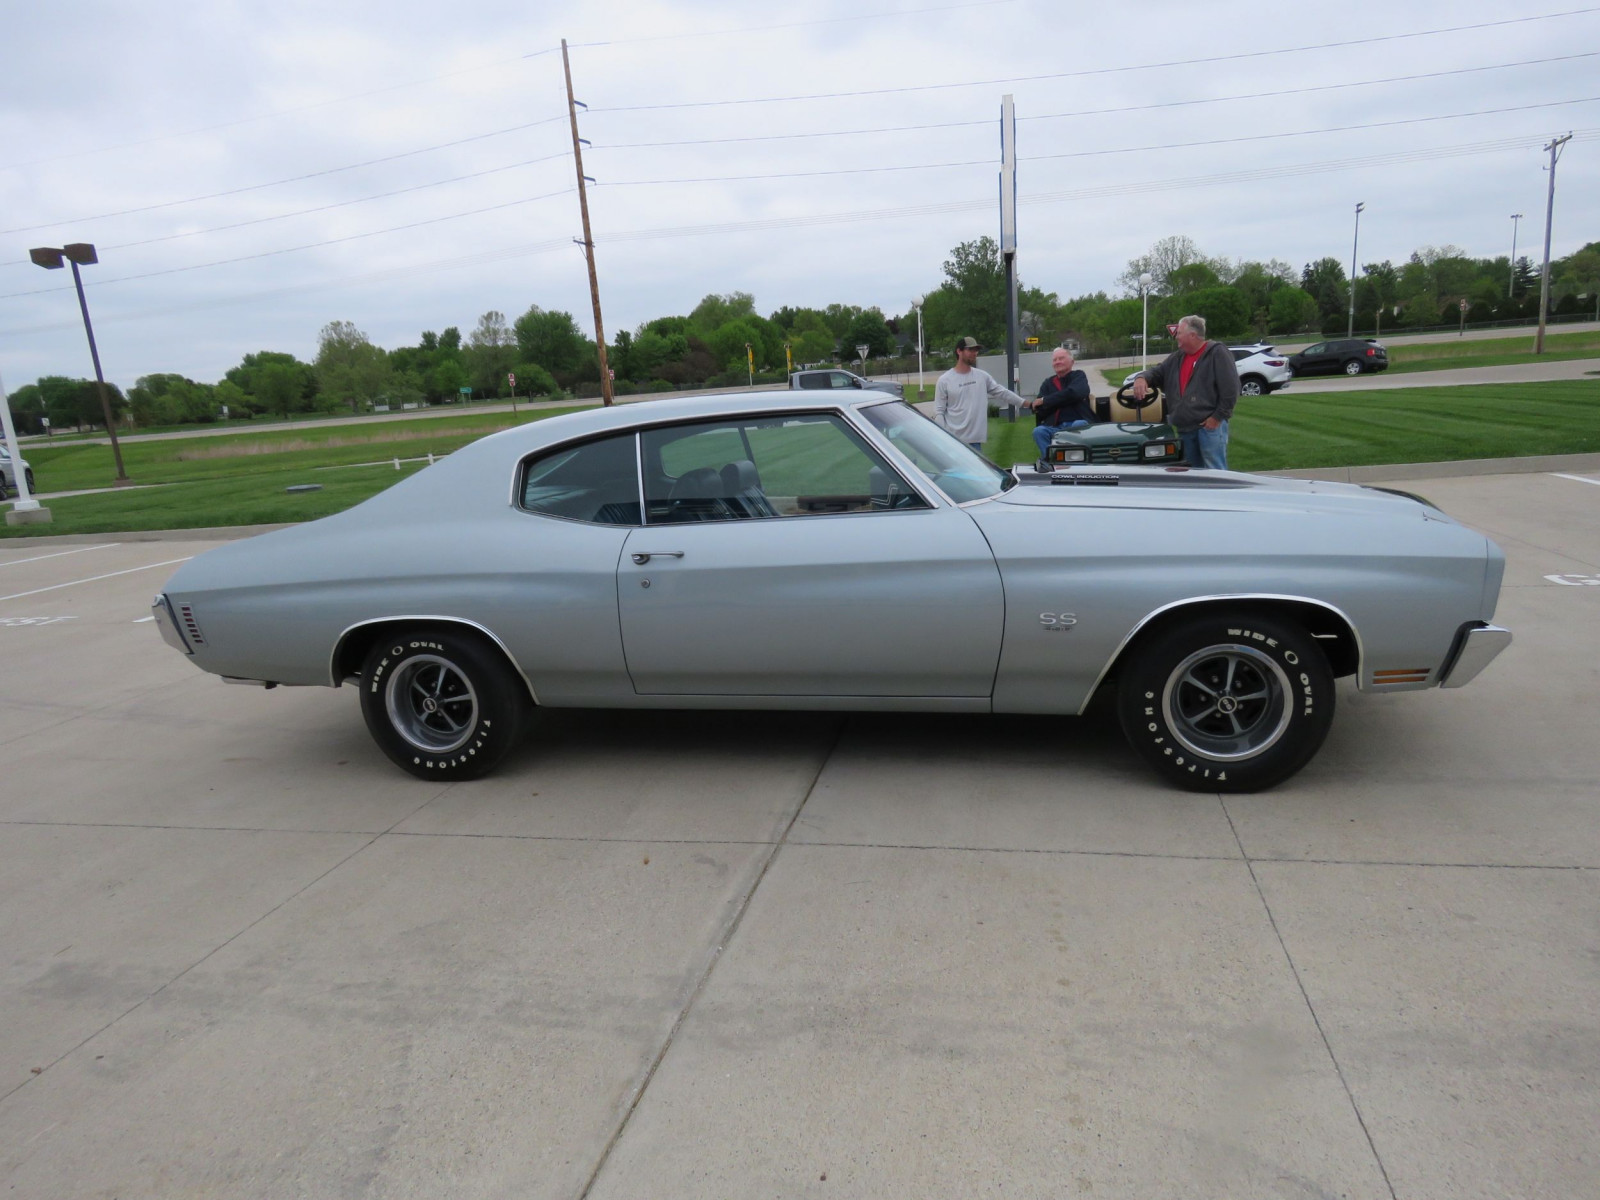 1970 Chevrolet Chevelle SS Coupe - Image 12